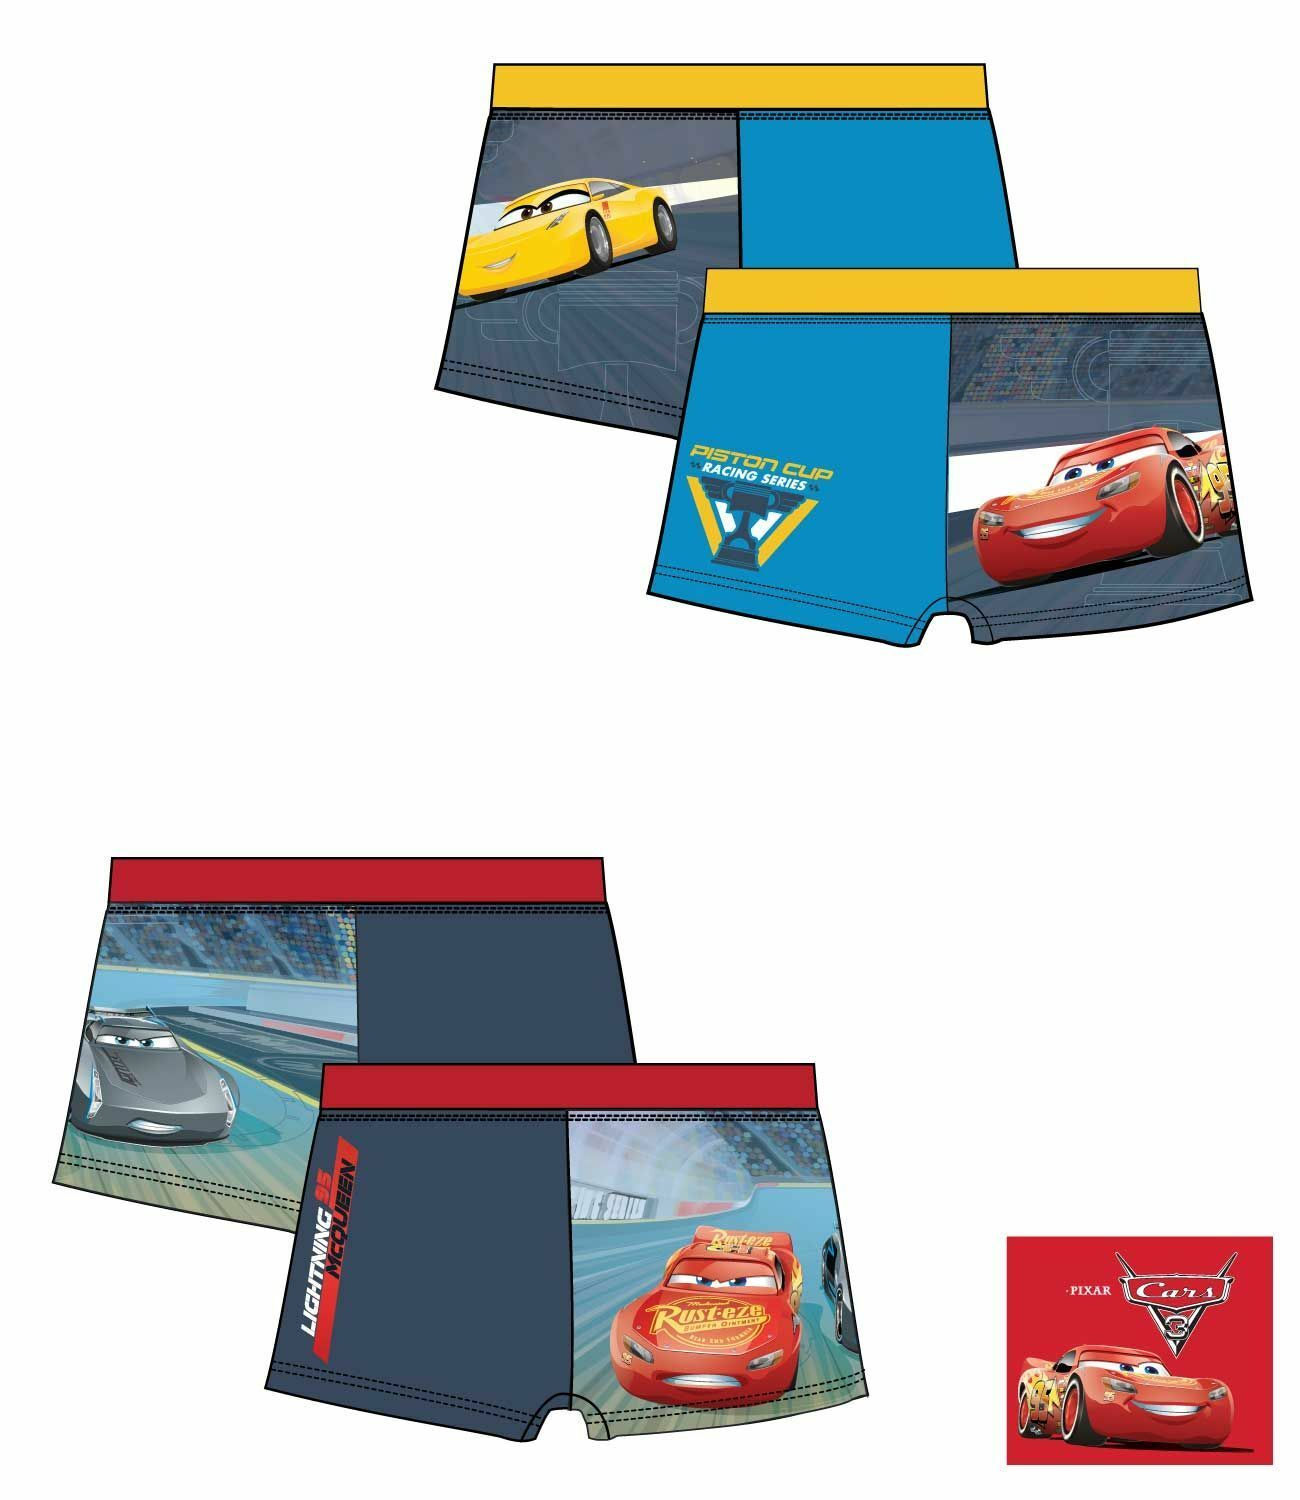 kinder disney cars auto jungen badehose gr 98 128 neu eur 7 50 picclick de. Black Bedroom Furniture Sets. Home Design Ideas